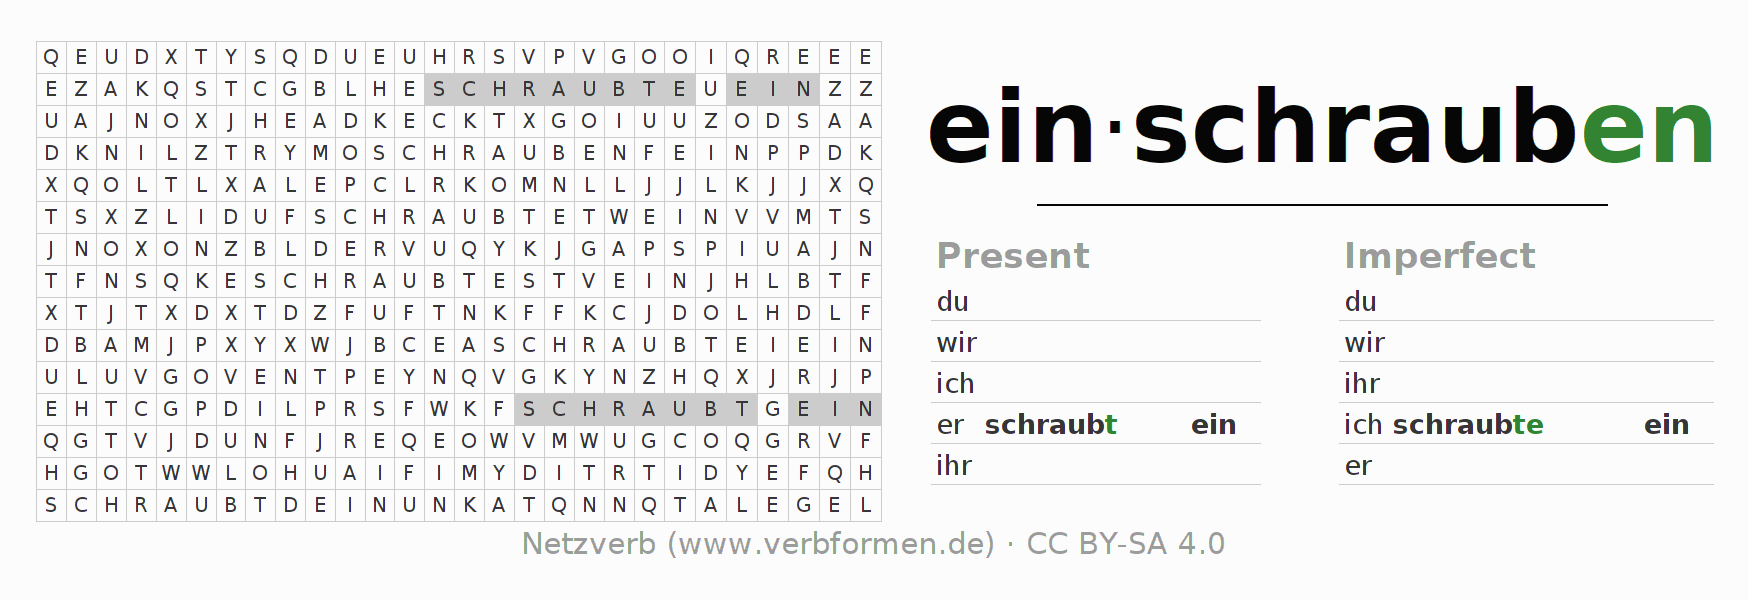 Word search puzzle for the conjugation of the verb einschrauben